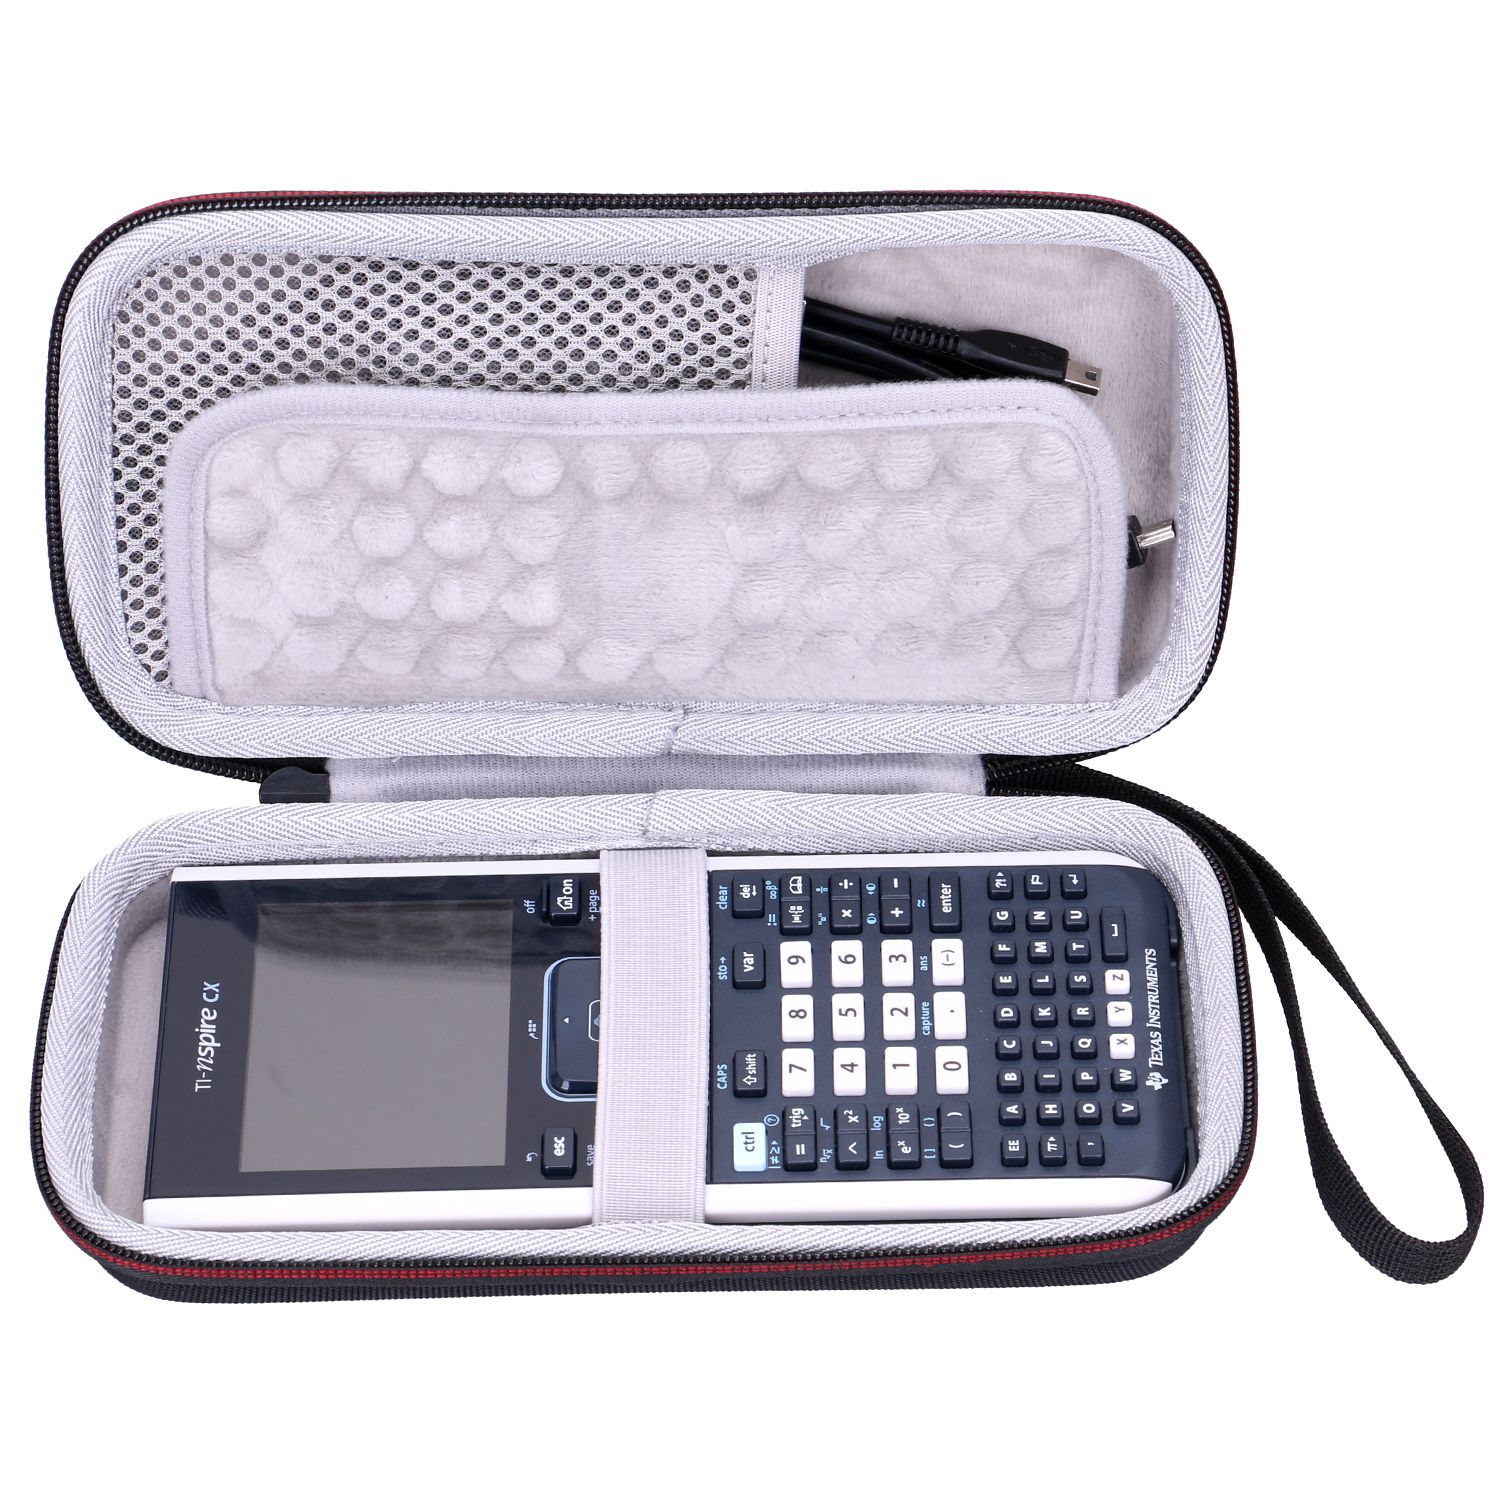 LTGEM EVA Waterproof Shockproof Carrying Hard Case For Texas Instruments TI-Nspire CX Graphing Calculator